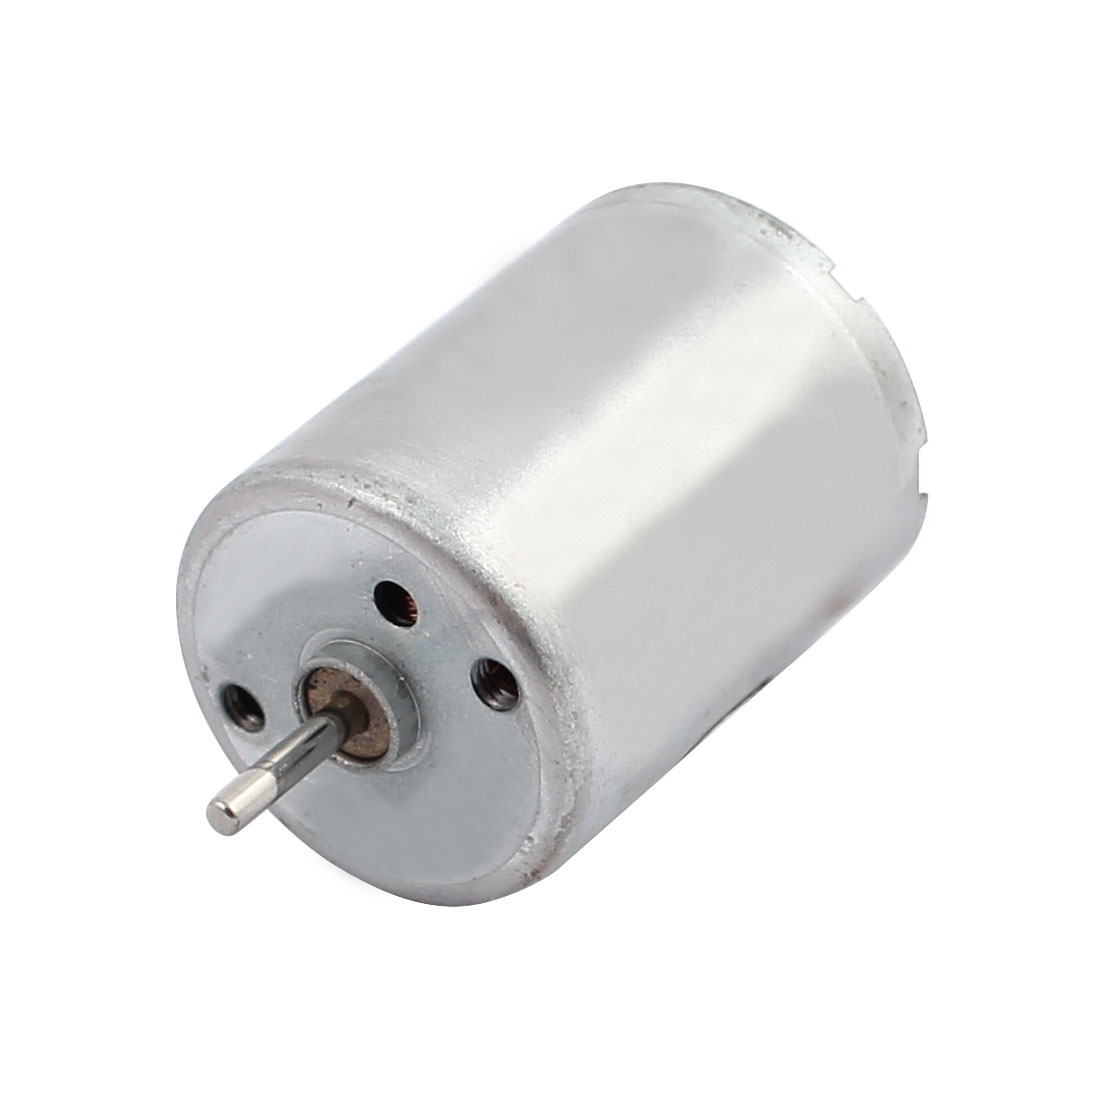 DC6V 22000RPM Rotary Speed Electric Mini Motor RF370C-15360 for DIY Model Toy